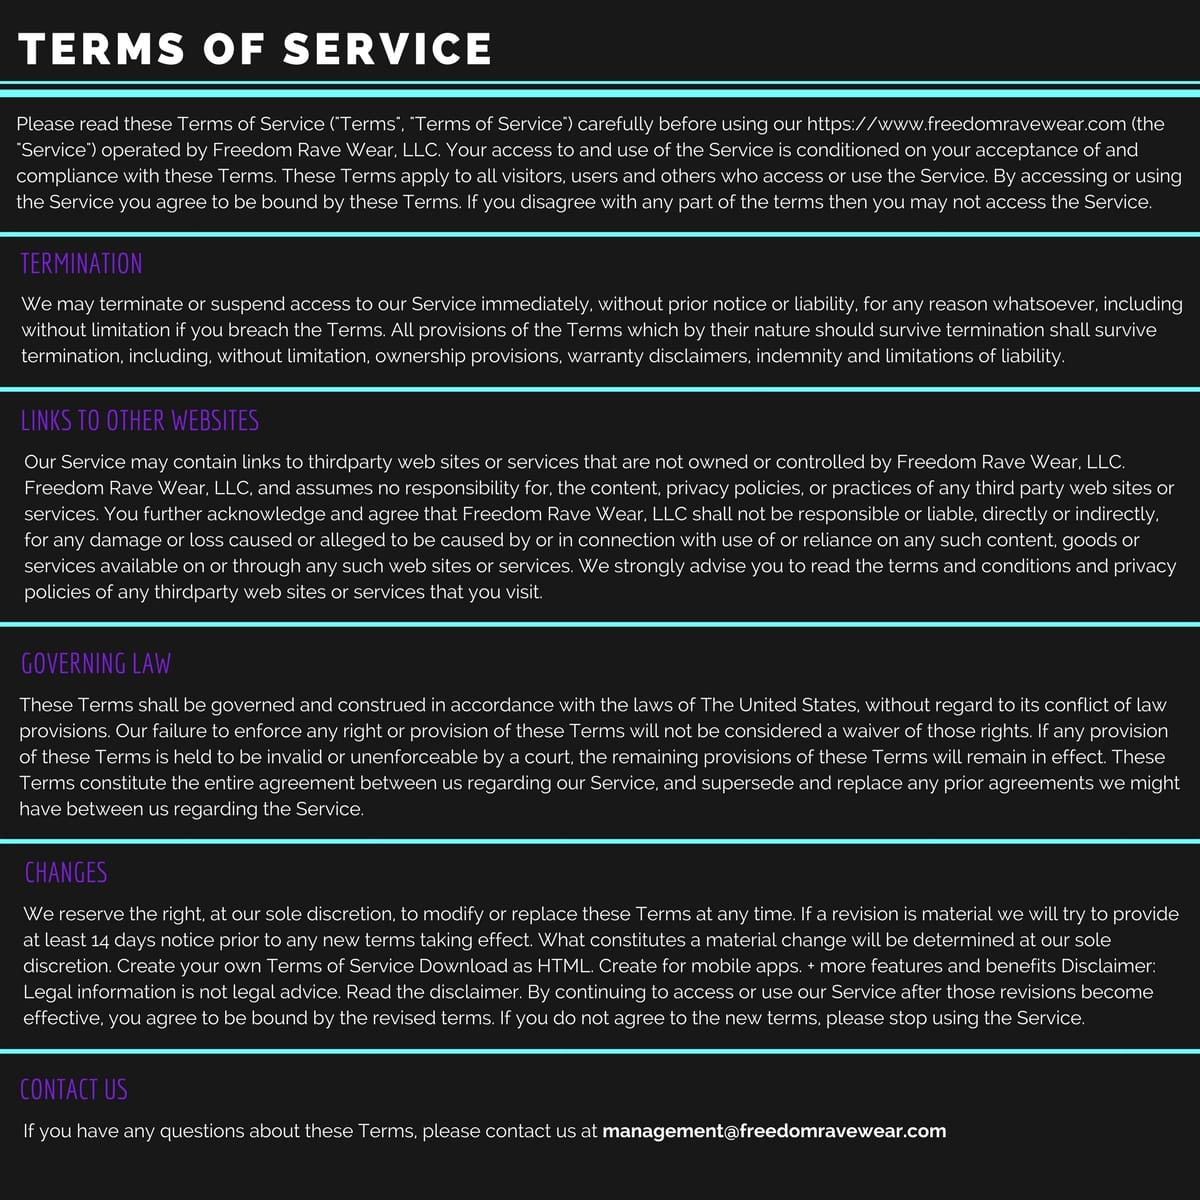 Freedom Rave Wear Terms of Service